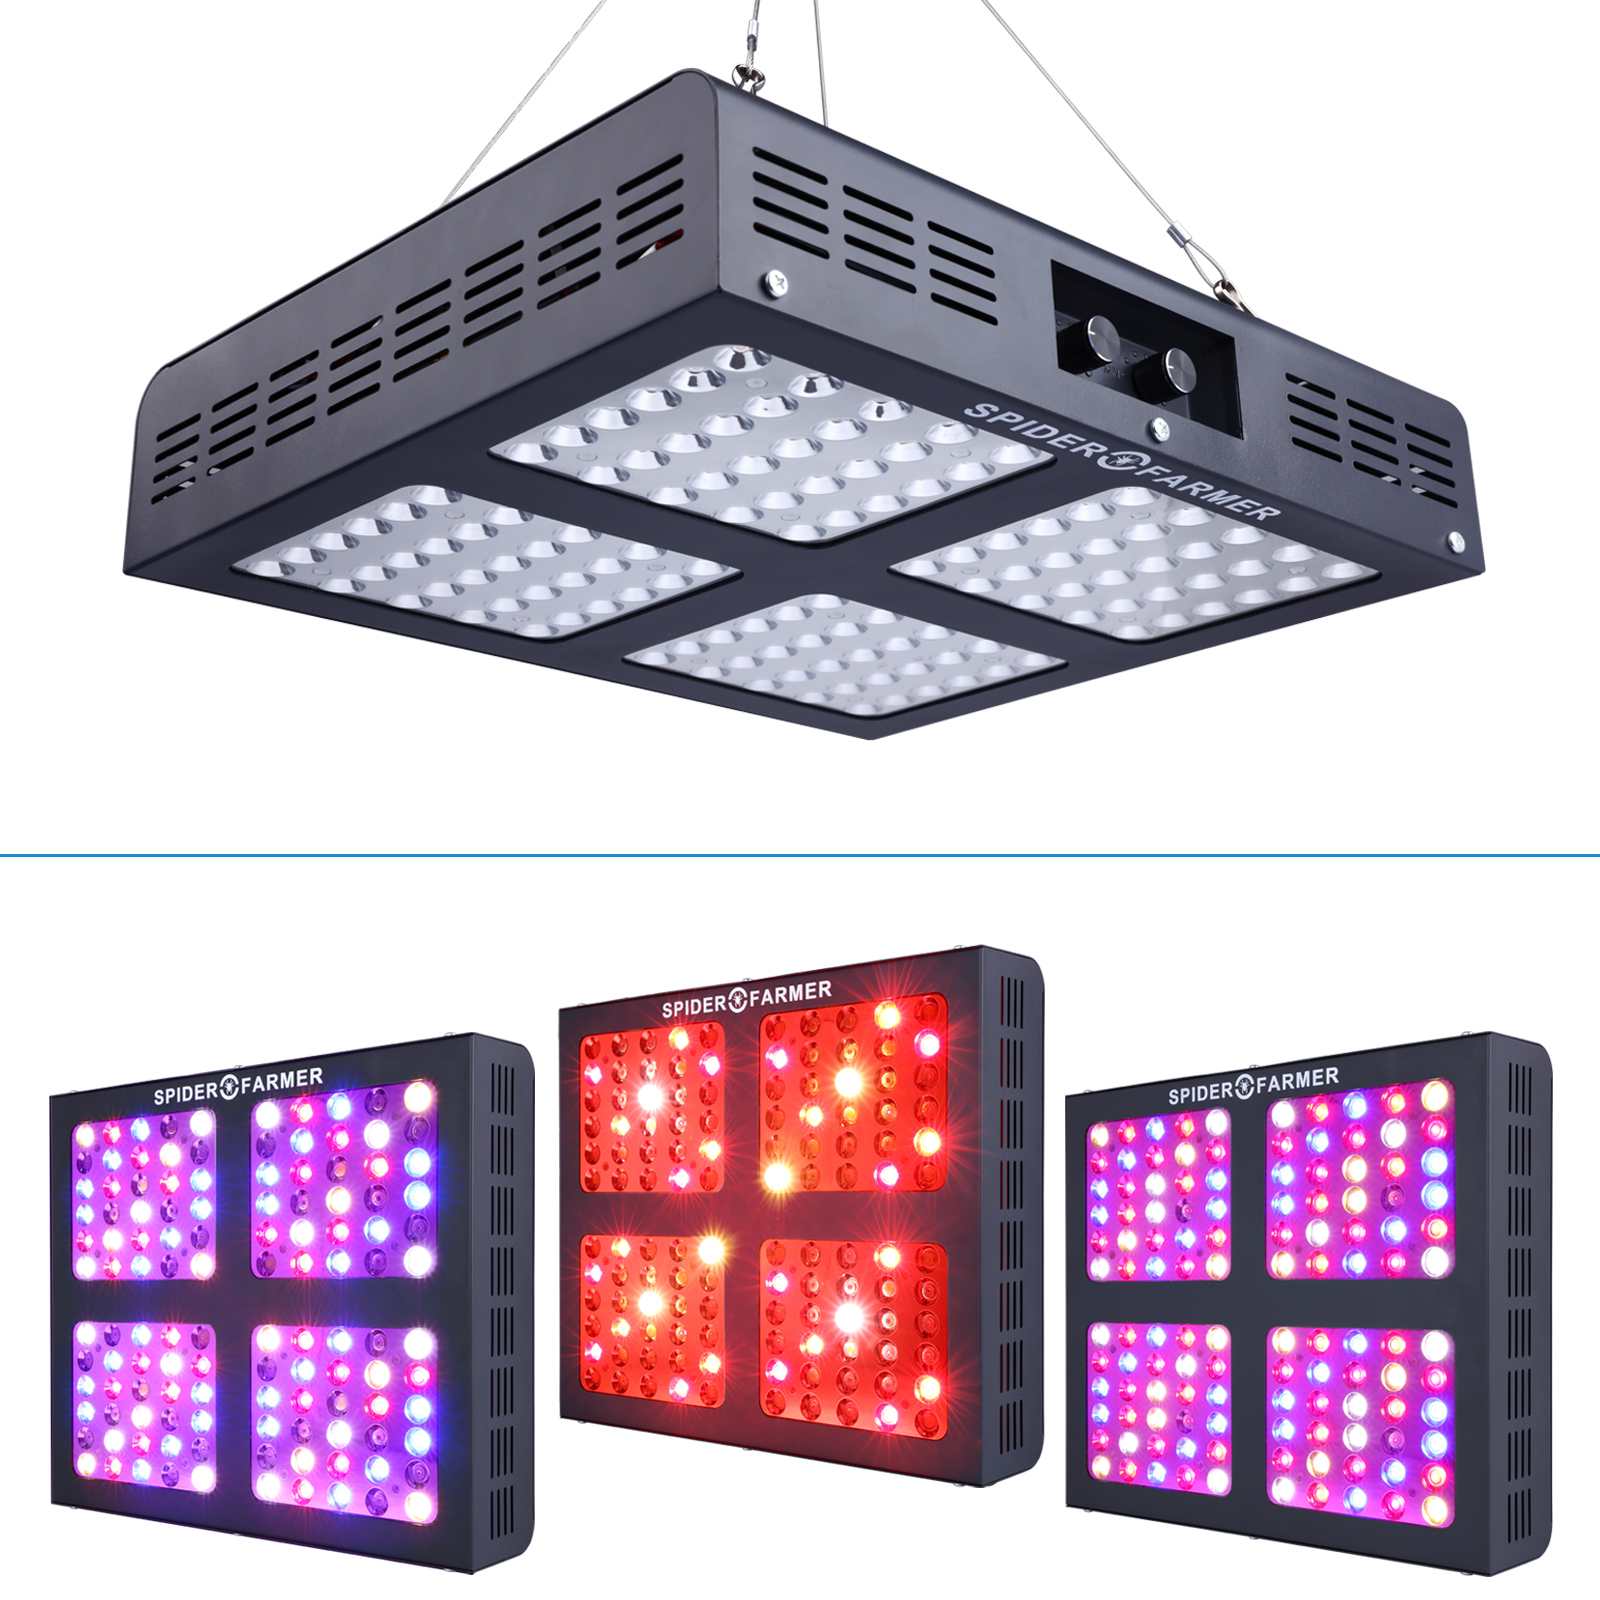 Spider Famer 1200w Dimmable Led Grow Lights Full Spectrum